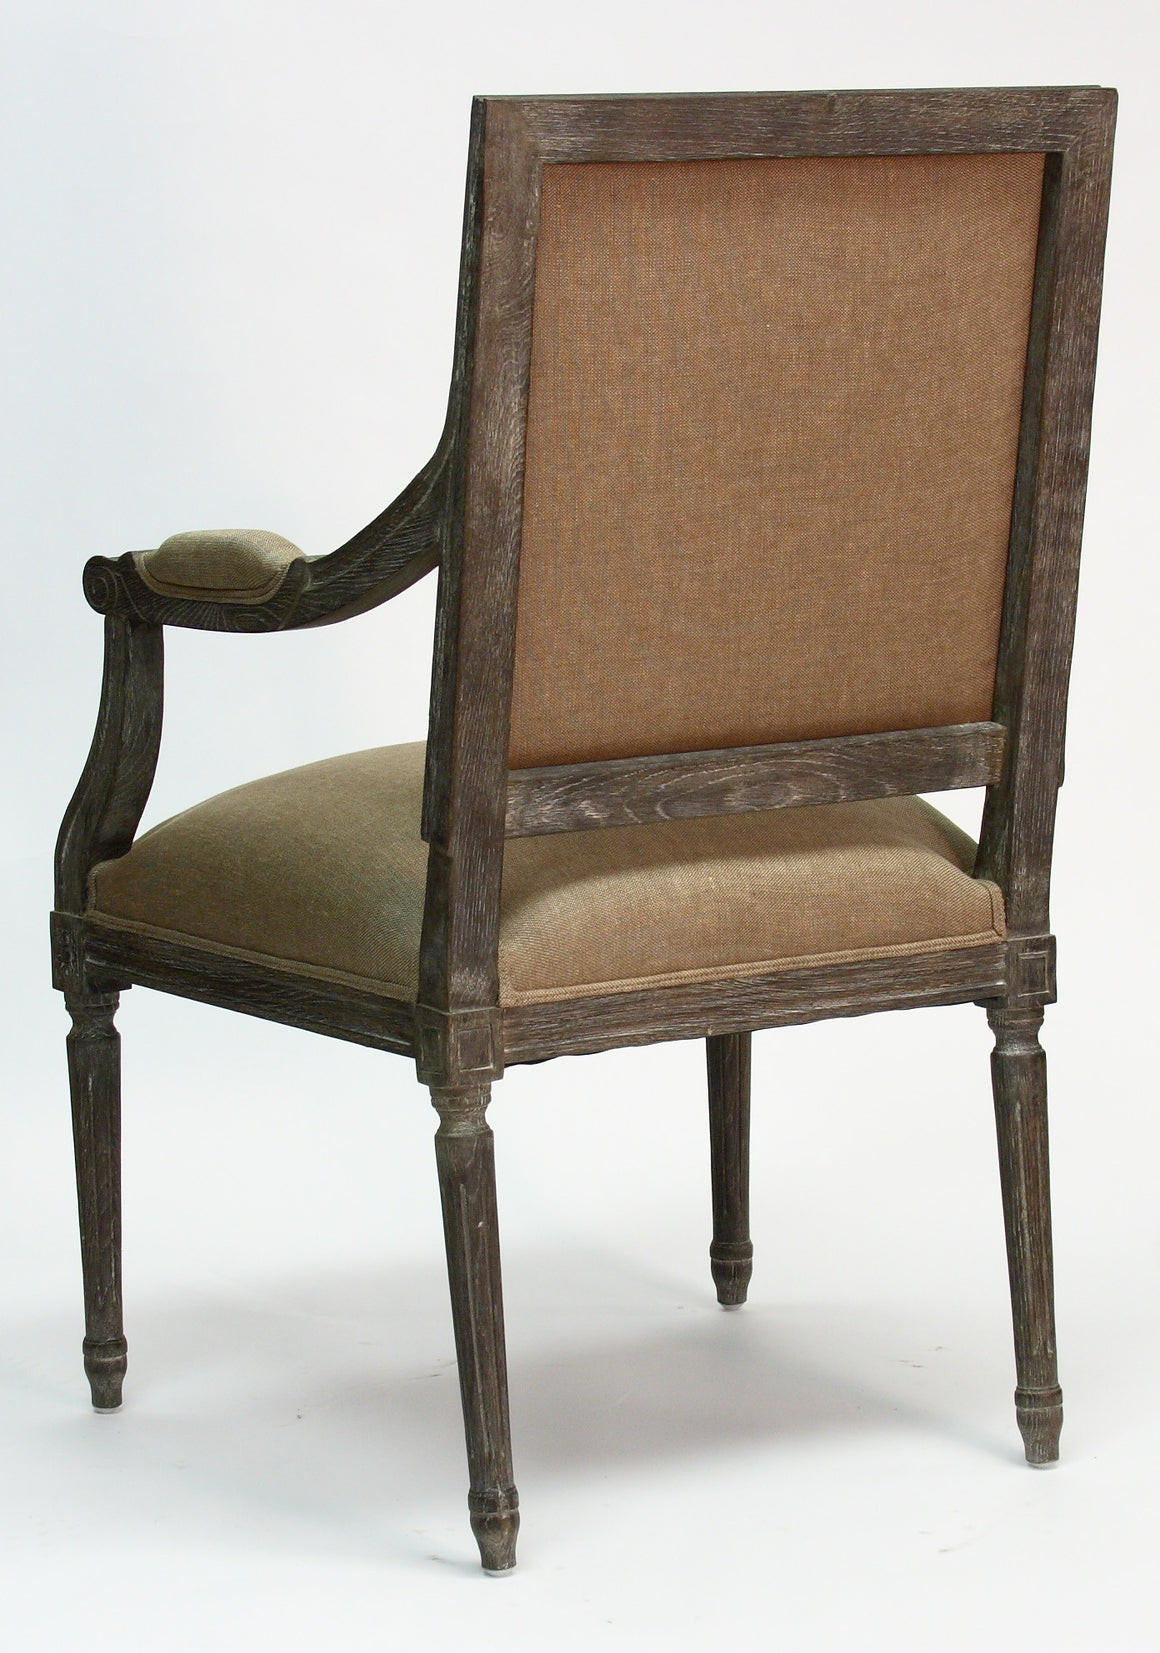 Dining Chair - Louis Arm Chair, Limed Charcoal Oak